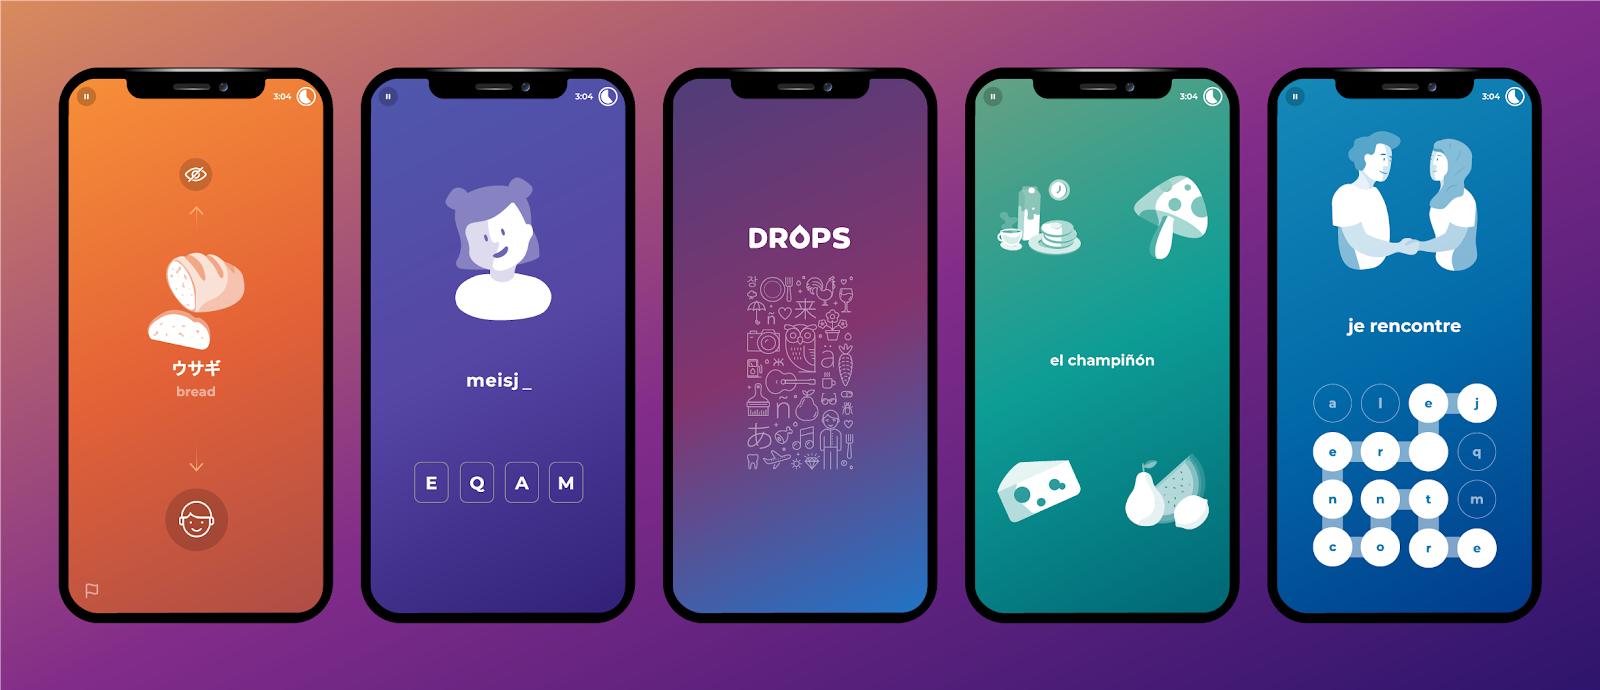 Five phones displaying different pages from Drops